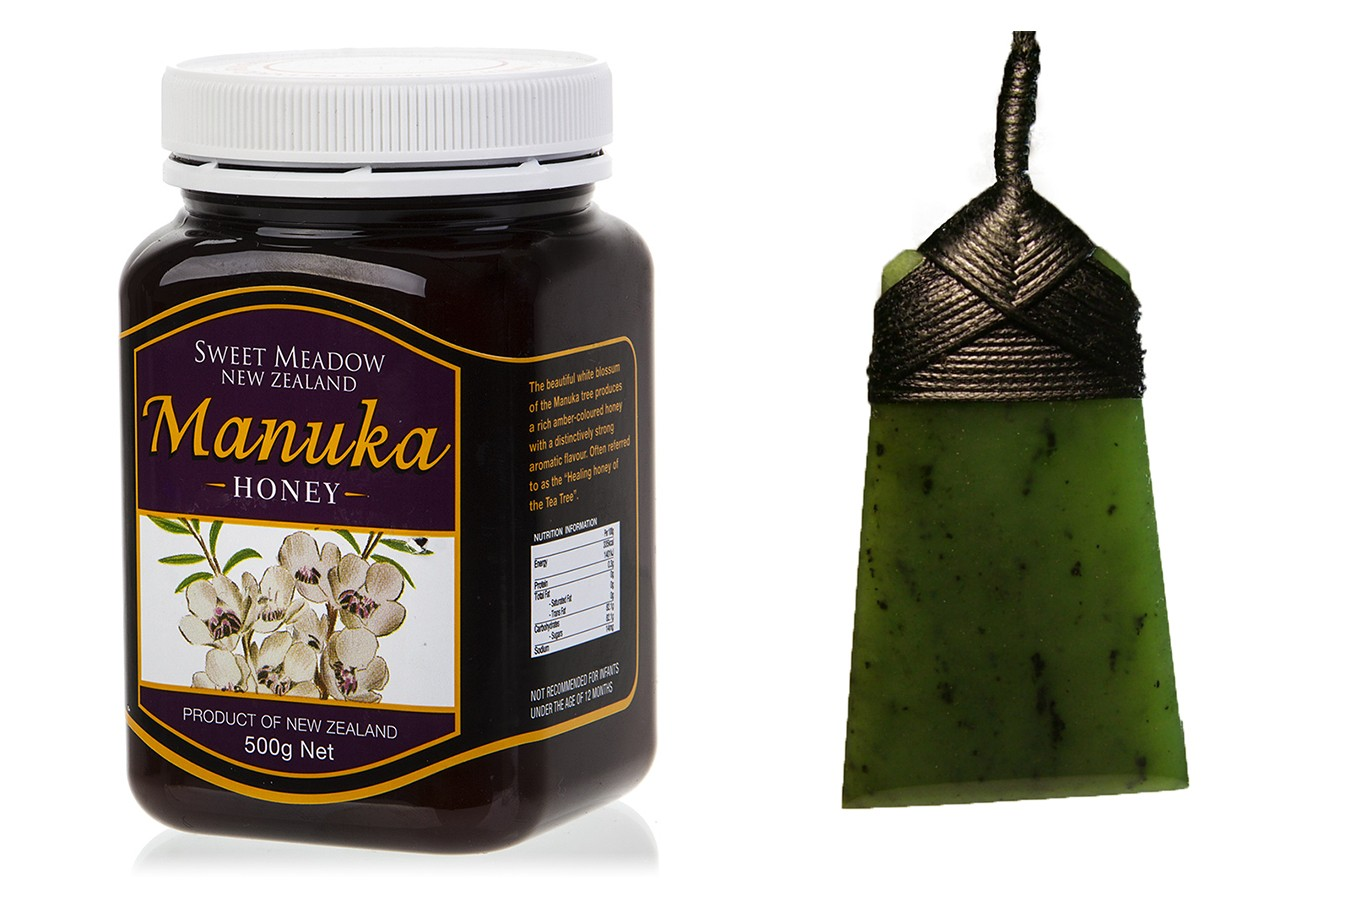 NEW ZEALAND - Eat: The one product I never fail to bring back is New Zealand Manuka Honey. Derived from the Manuka plant, the honey contains wonderful natural health and antibacterial properties. It's a real favourite in my household. Manuka honey can be enjoyed from the spoon, in a smoothie, with cereal, on toast or in your favorite beverage. <br><br> Buy: I would recommend picking up a Māori artefact from New Zealand such as jewellery made from New Zealand greenstone or jade (pounamu), abalone (paua) or whale bone; or a small Māori carving or gift box made from one of New Zealand's indigenous trees such as rimu, kahikatea, totara or kauri. (Dr. Trevor Matheson, Ambassador of New Zealand)